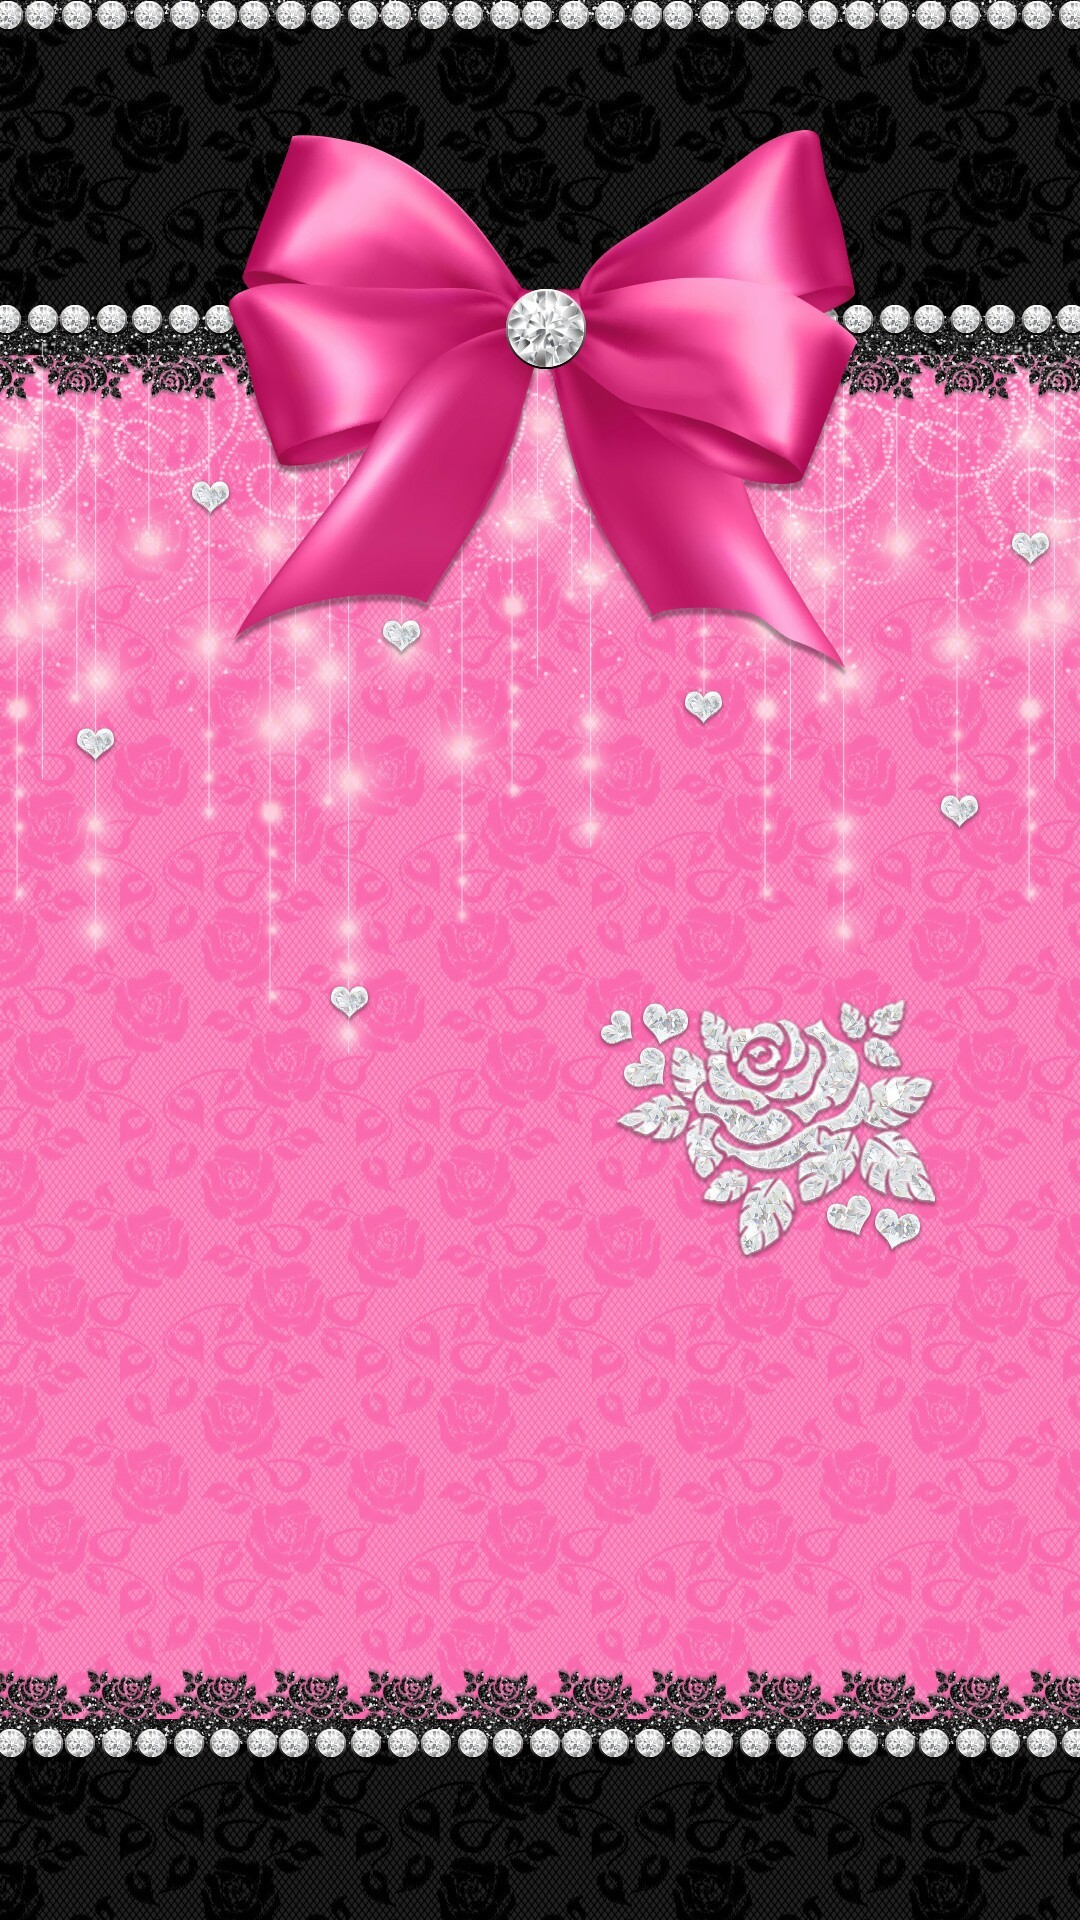 Res: 1080x1920, Pin by Enchanted in Pink on Backgrounds   Pinterest   Wallpaper, Artist and Wallpaper  backgrounds